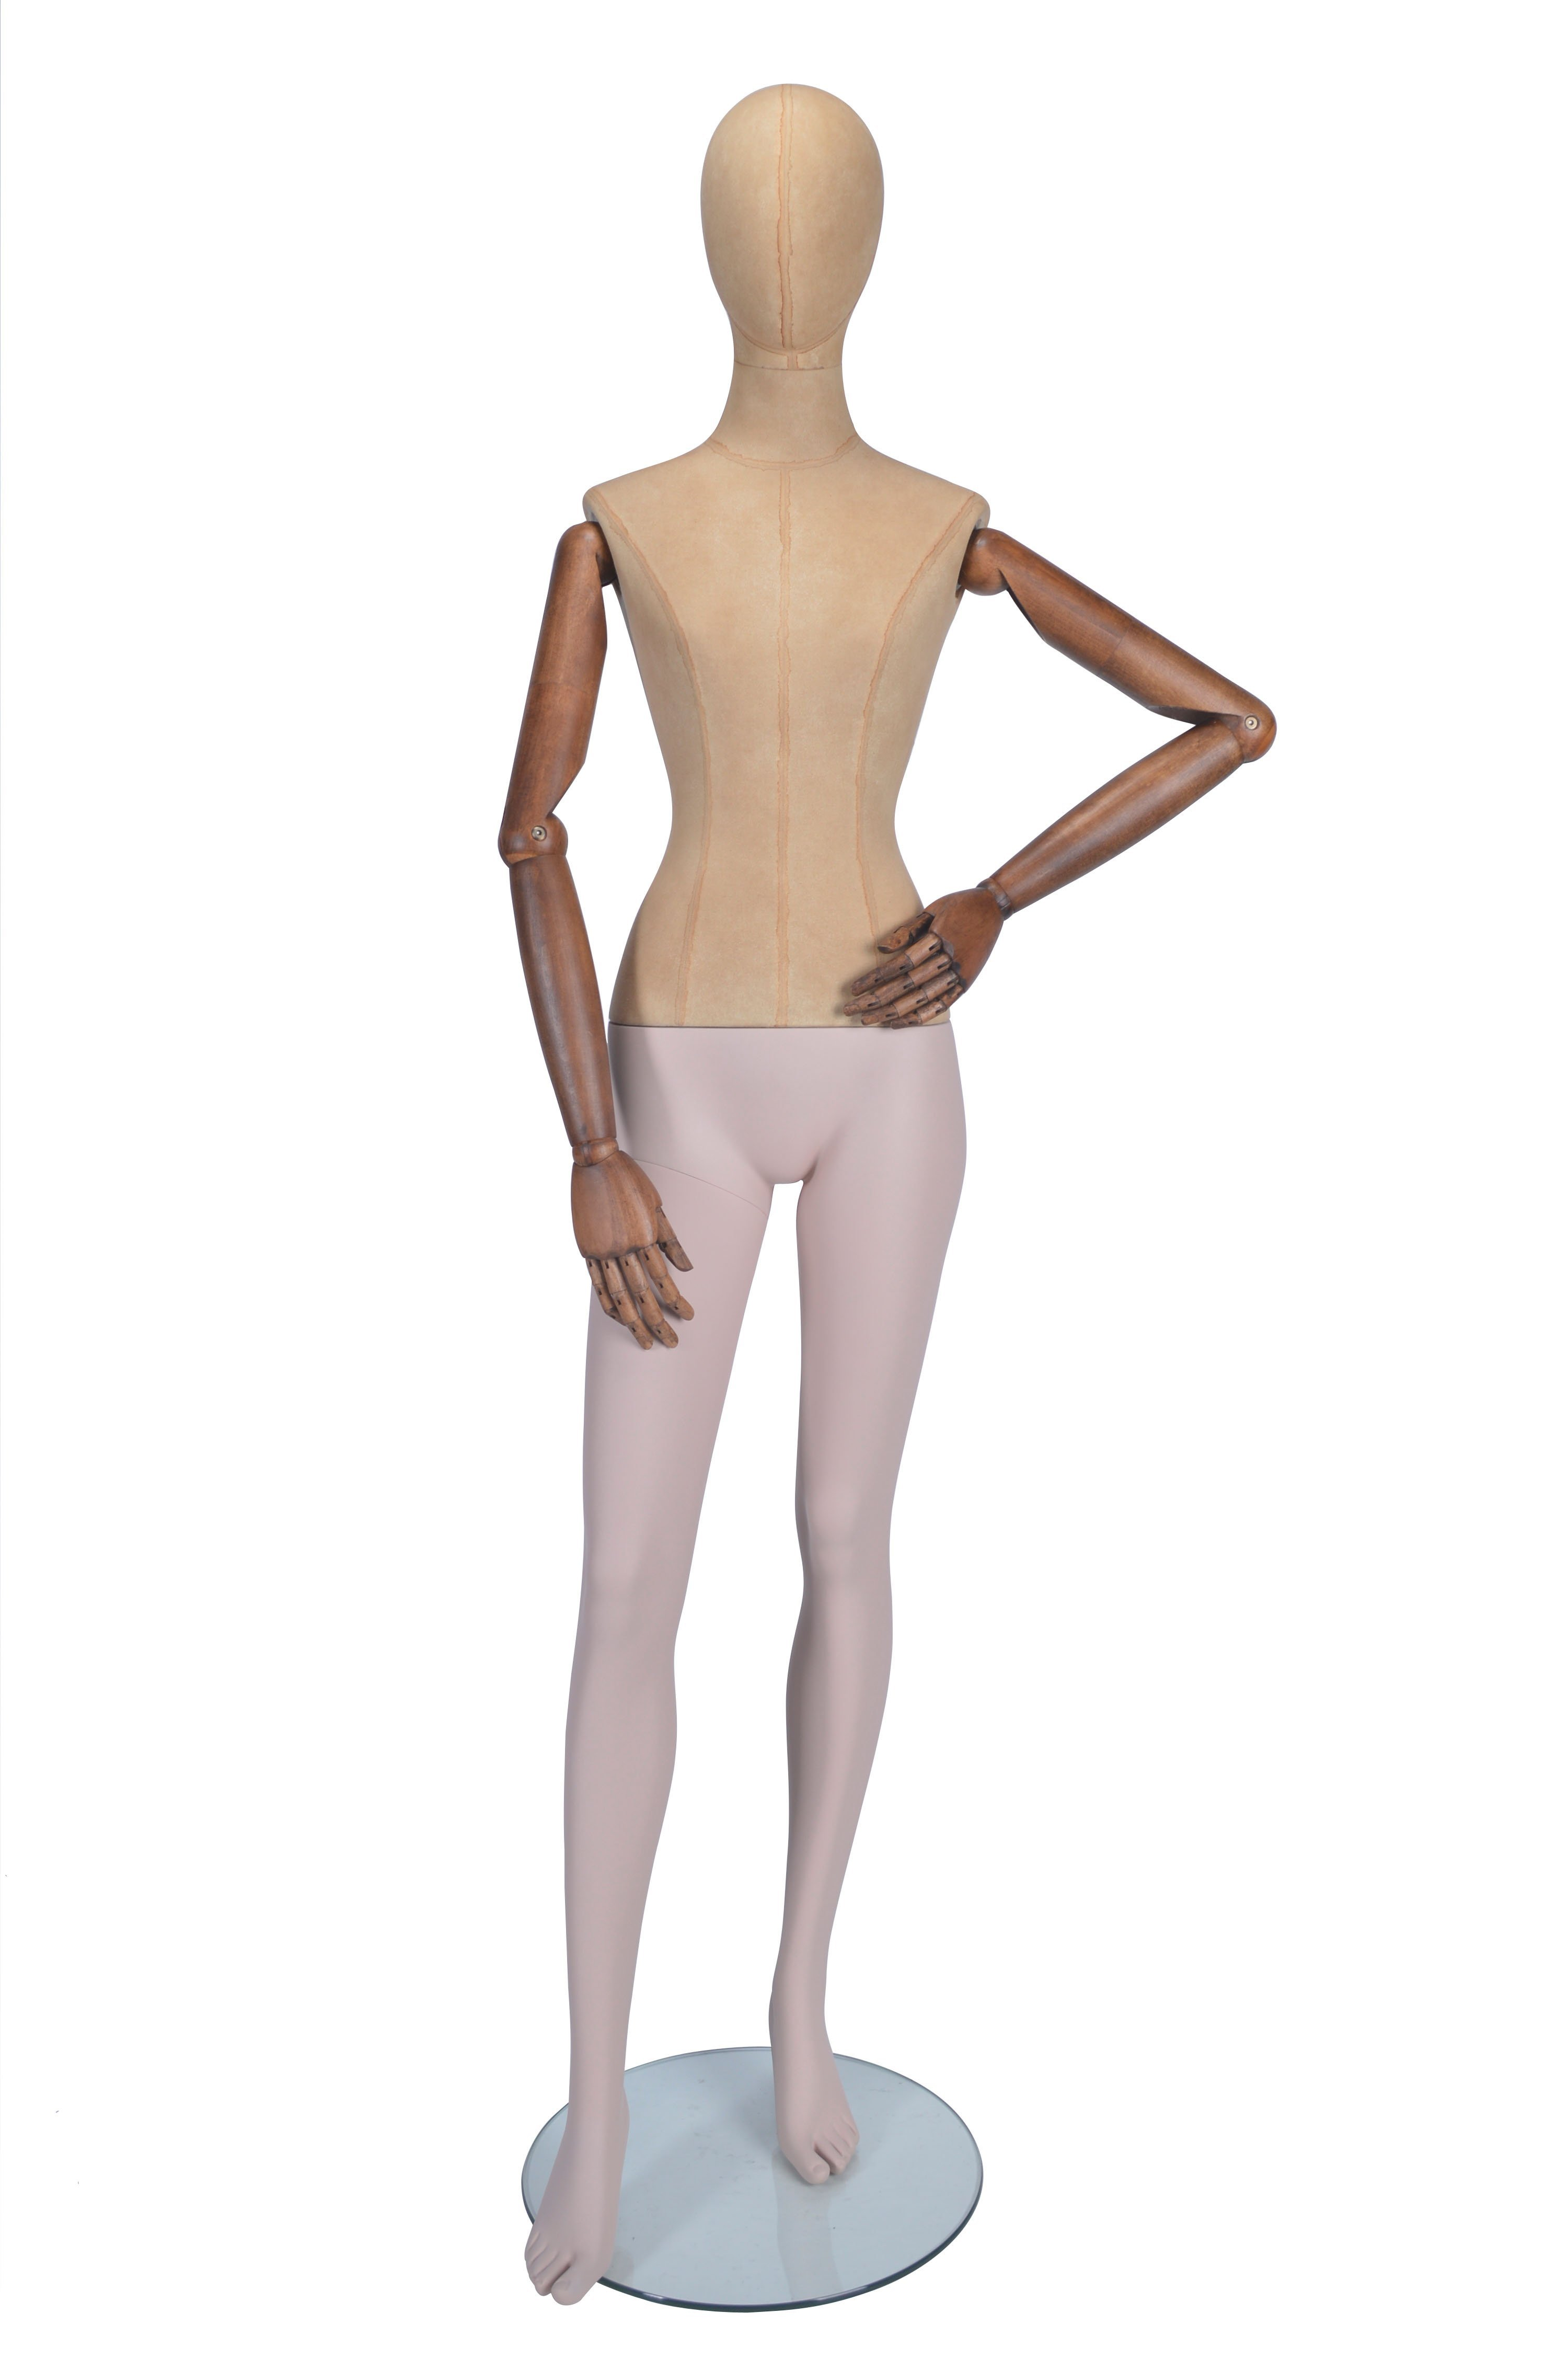 Standing Pose Female Mannequin - Moveable Arms